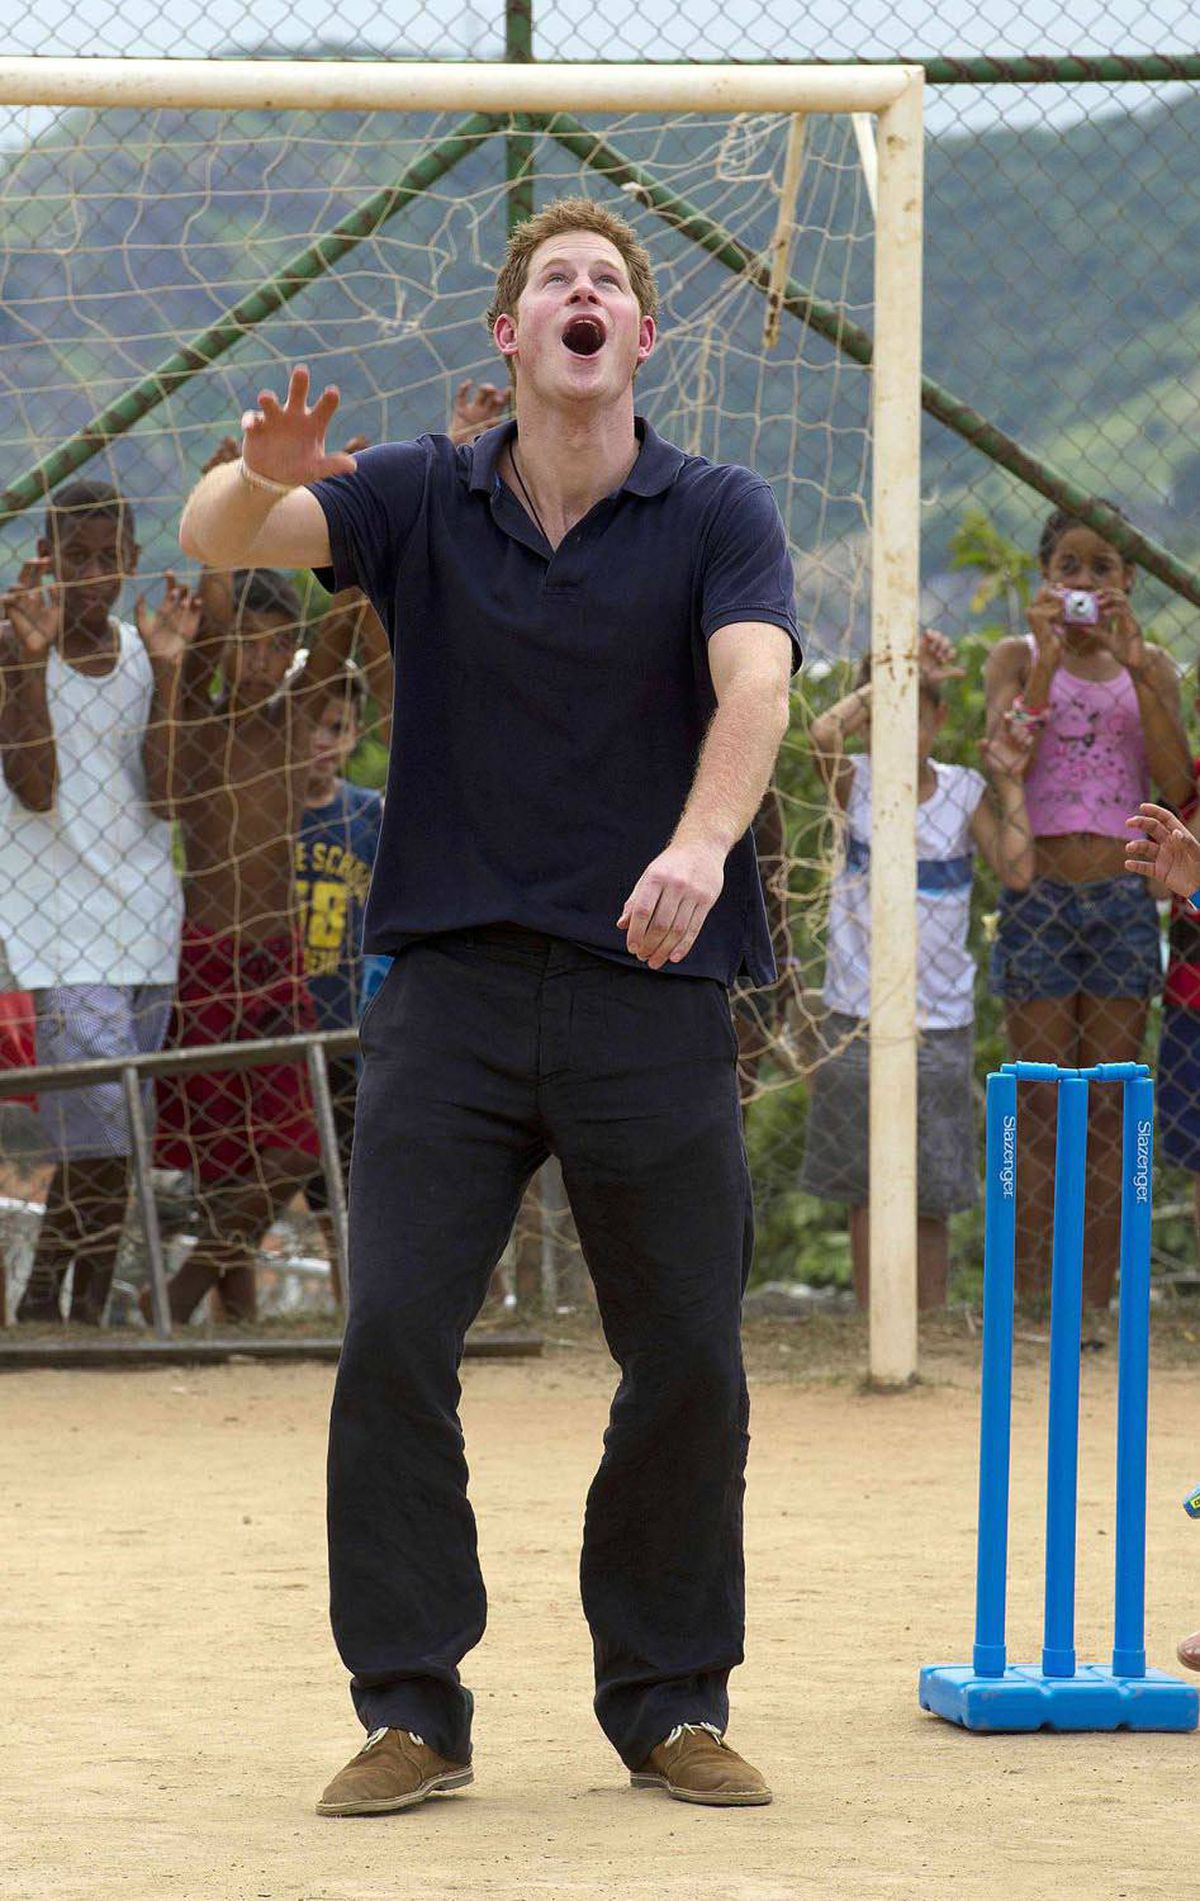 CRICKET PLAYER Britain's Prince Harry plays cricket during a visit to the occupied community of Complexo do Alemao in Rio De Janeiro, March 10, 2012.